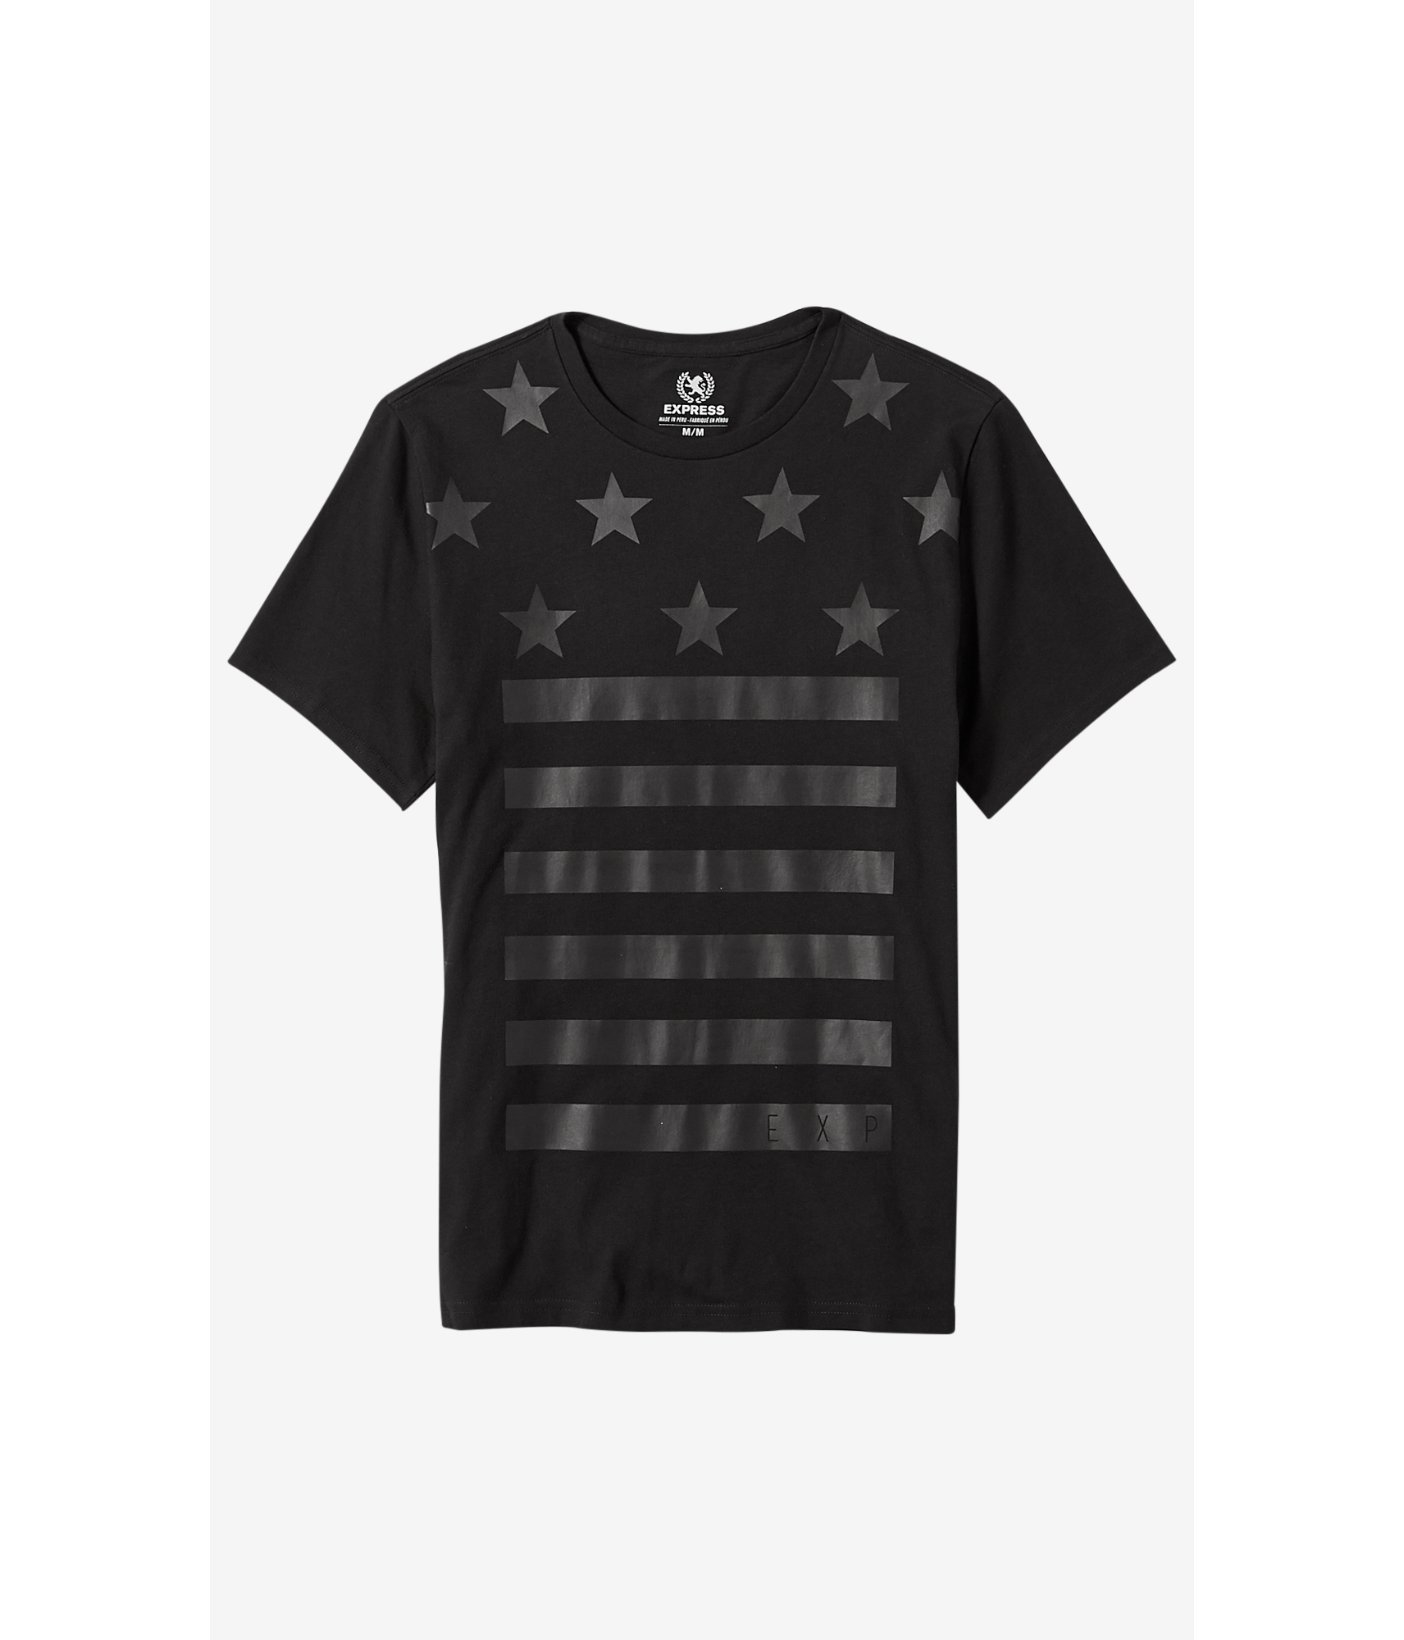 ad409092 Express Black Stars And Stripes Graphic T-shirt in Black for Men - Lyst